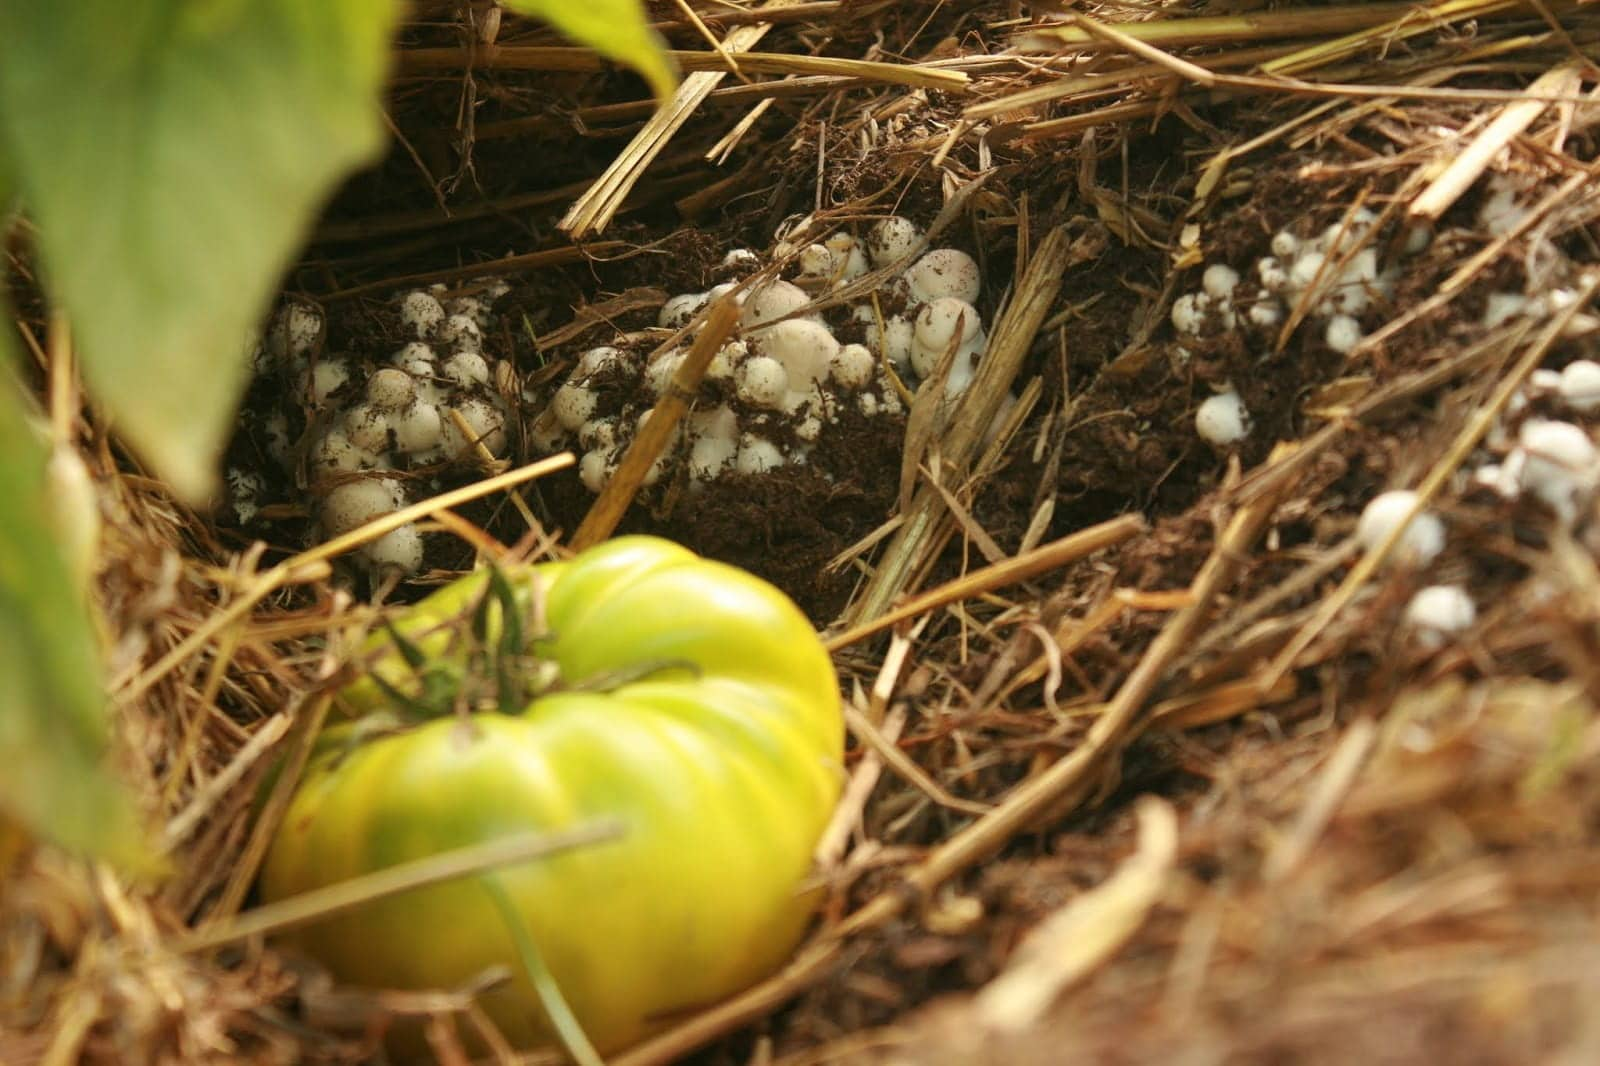 small mushrooms growing next to a fallen green tomato